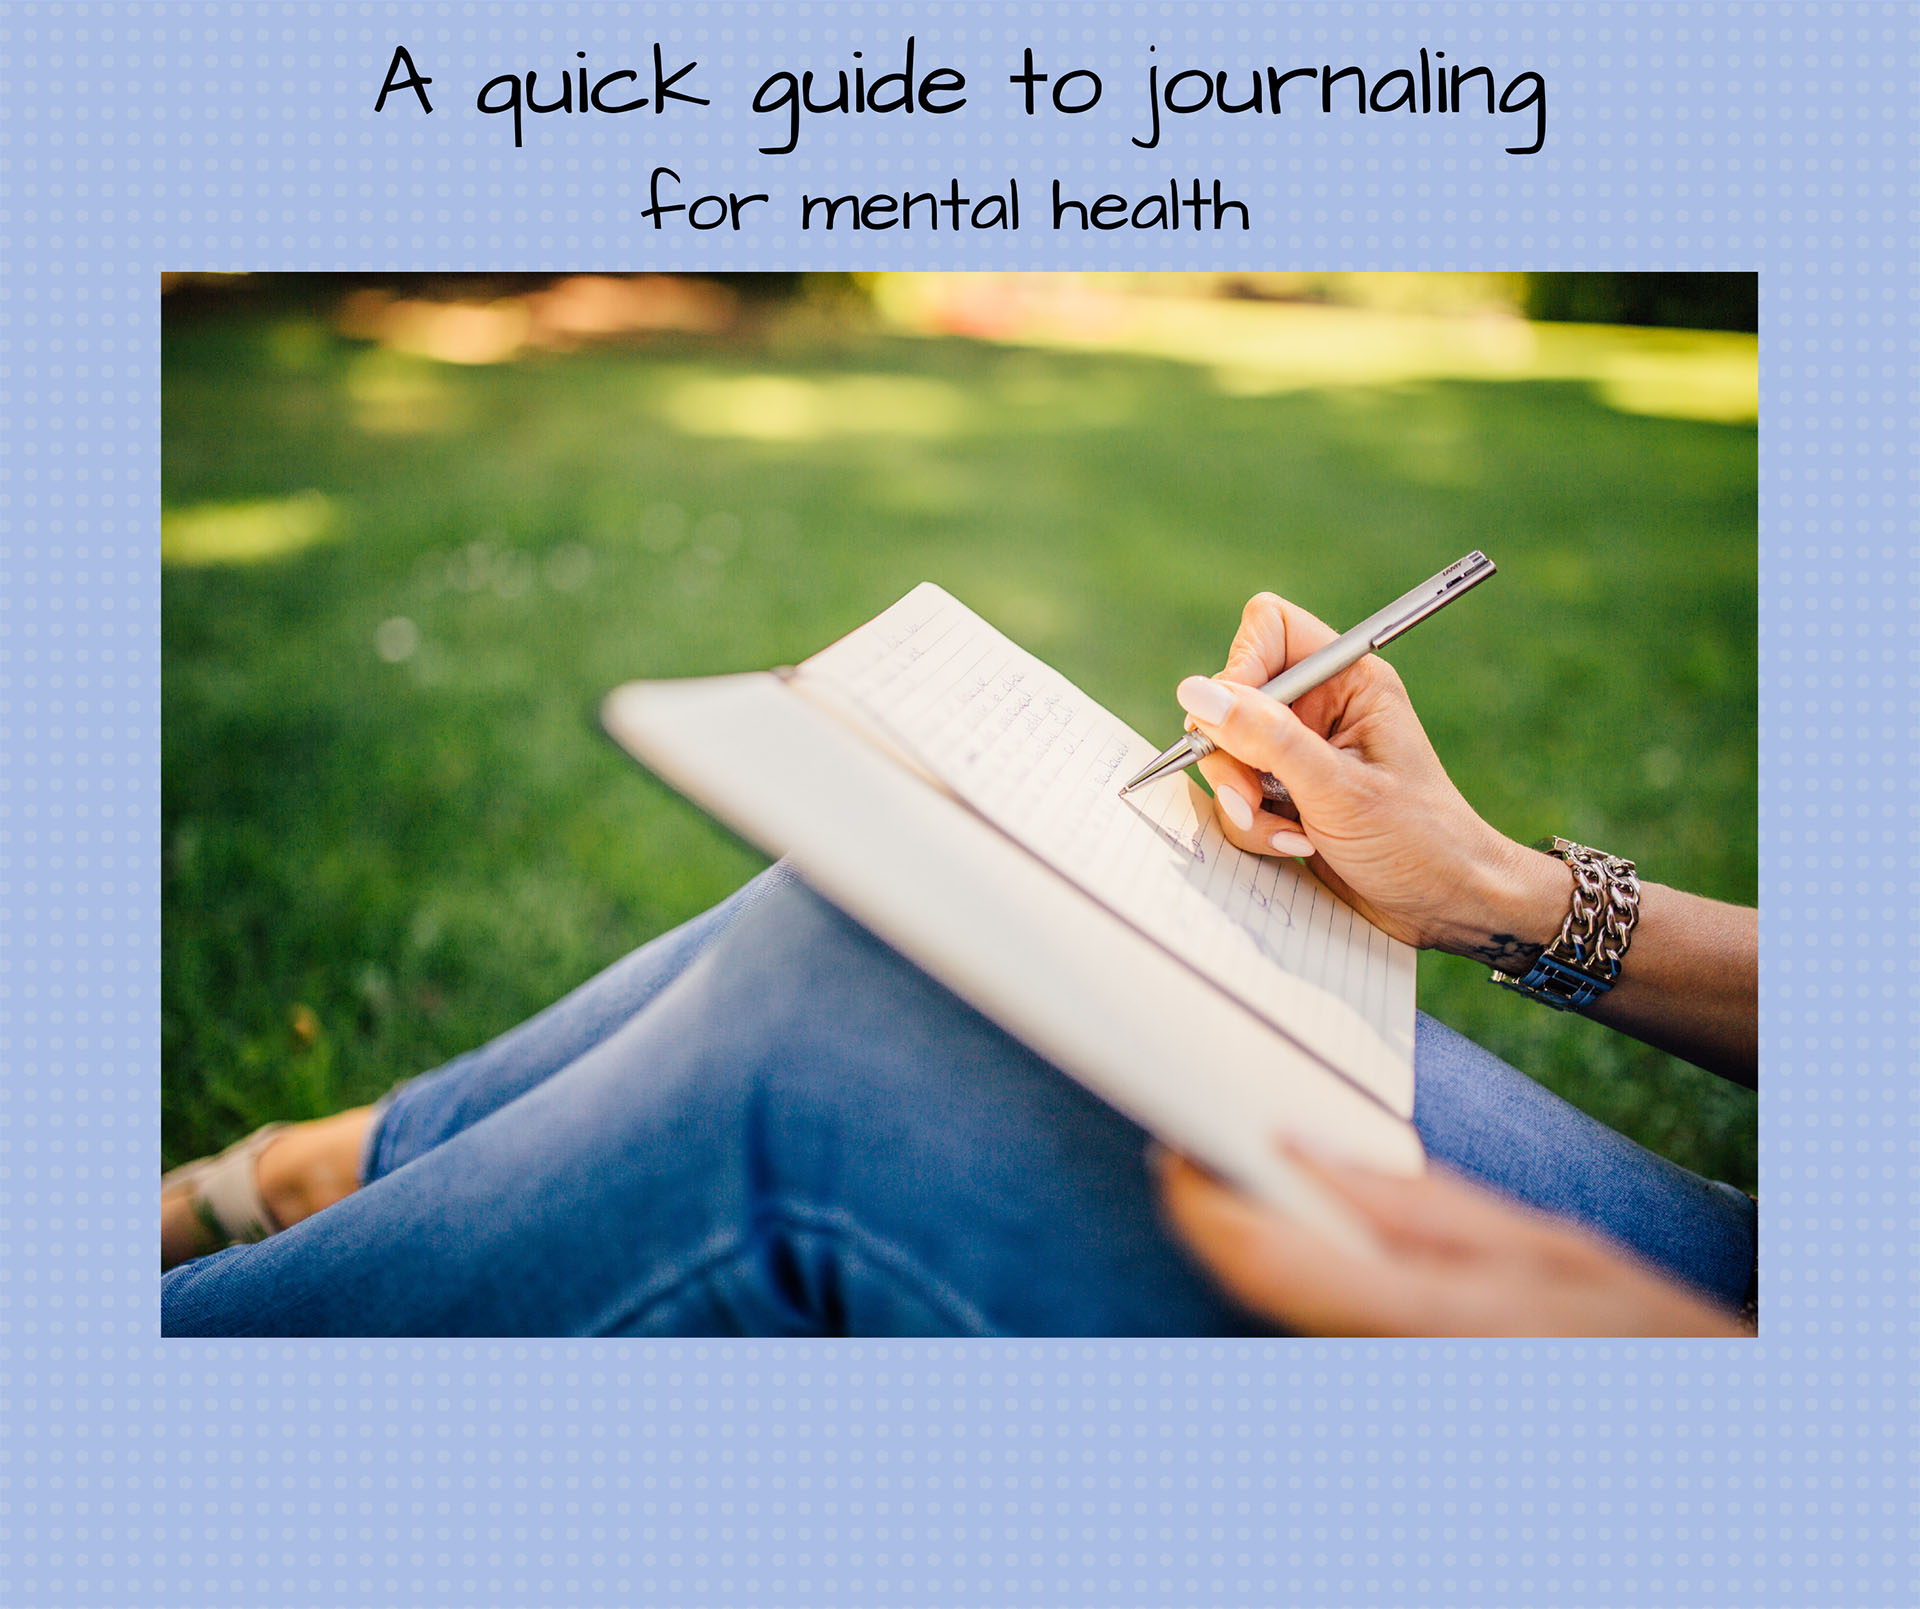 A guide to journaling for mental health